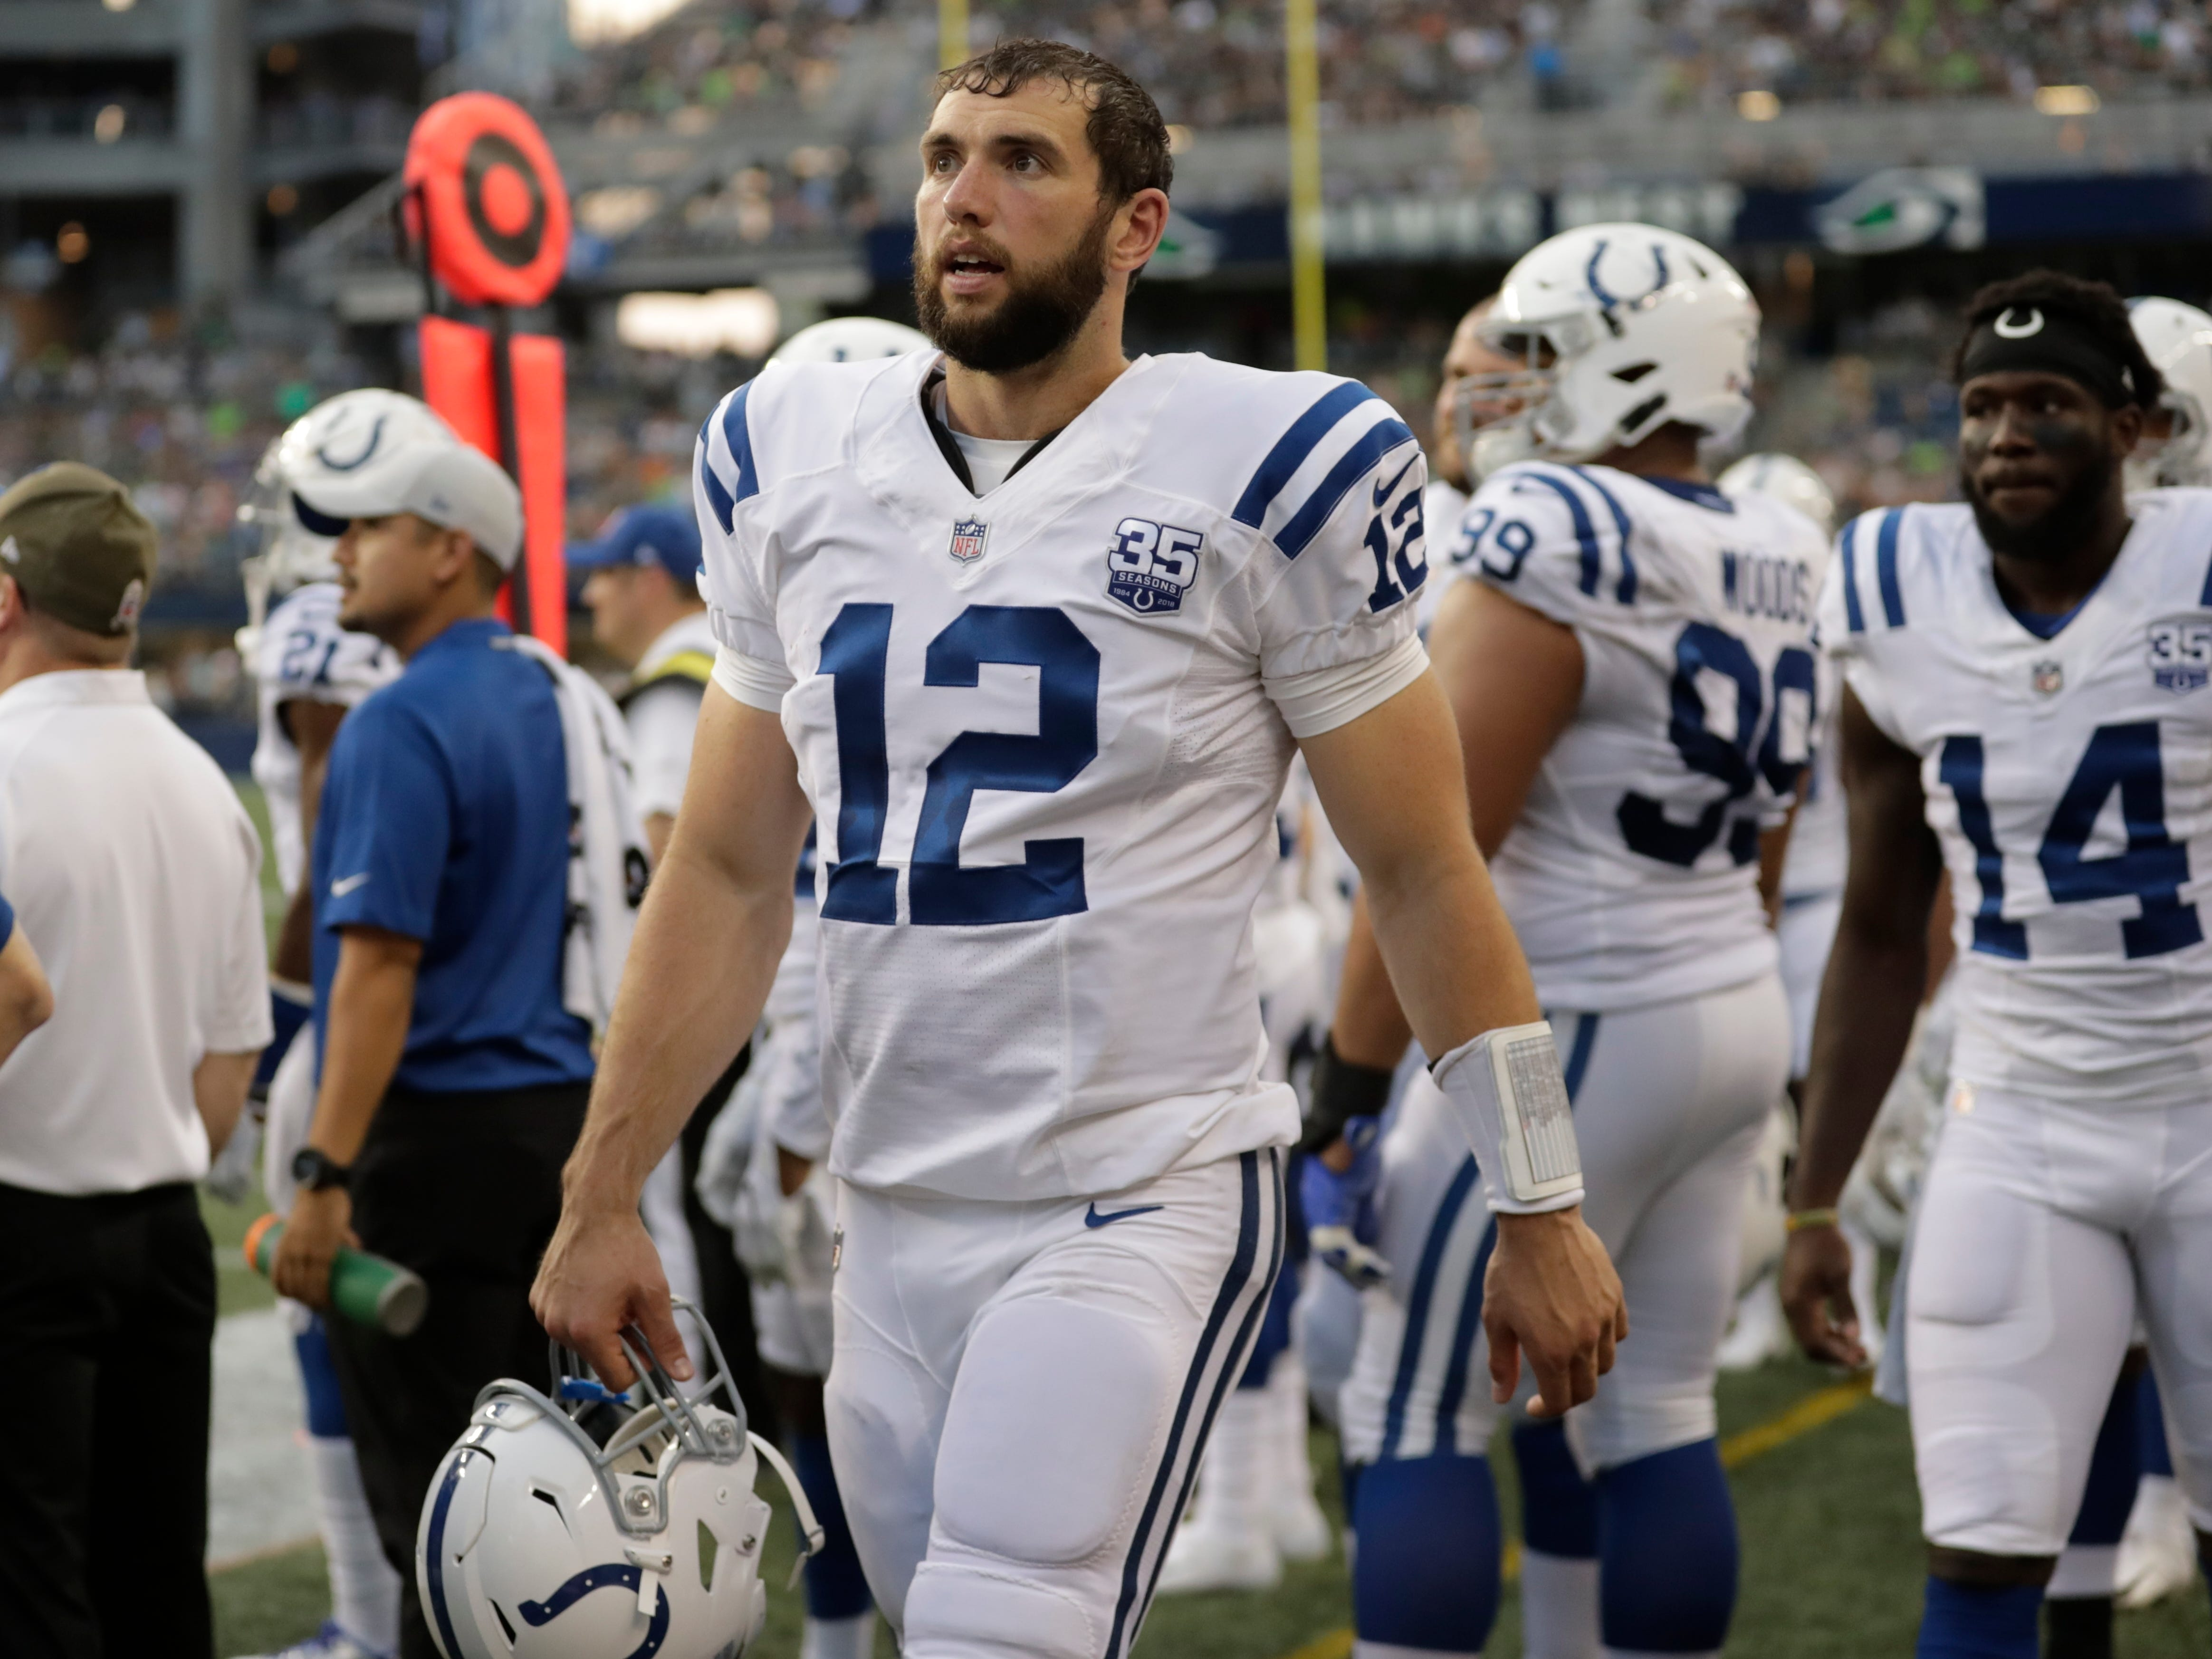 Indianapolis Colts quarterback Andrew Luck reacts on the sideline during the first half of an NFL football preseason game against the Seattle Seahawks, Thursday, Aug. 9, 2018, in Seattle.